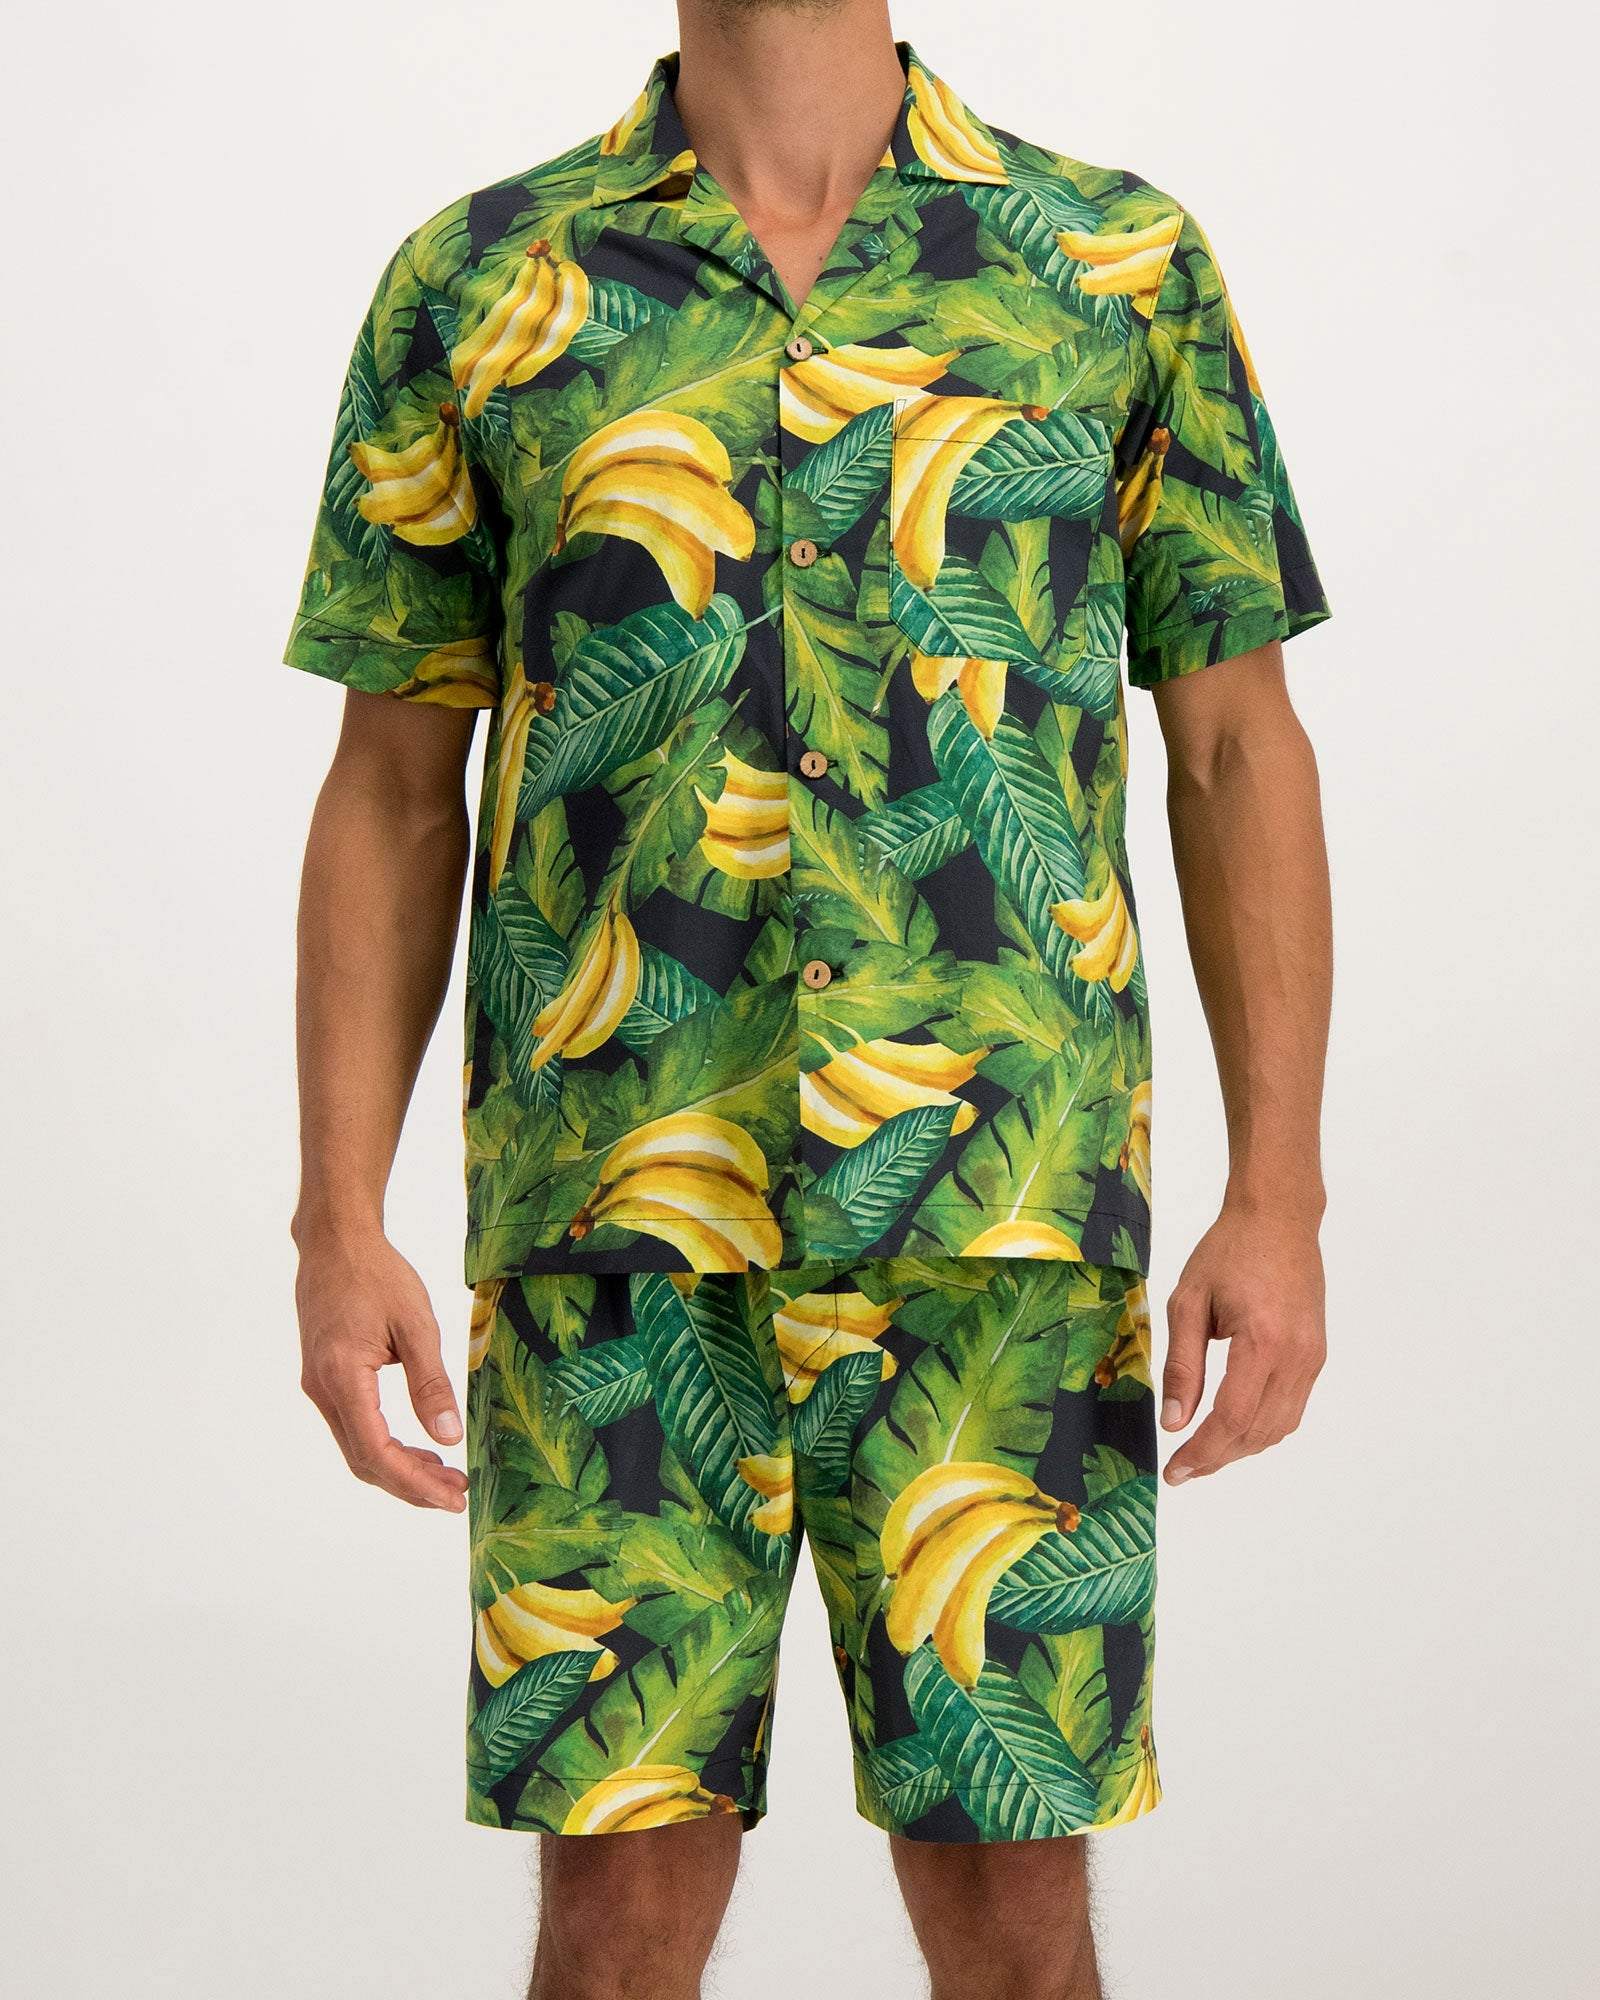 Mens Short Pyjamas Bananas on Leaves